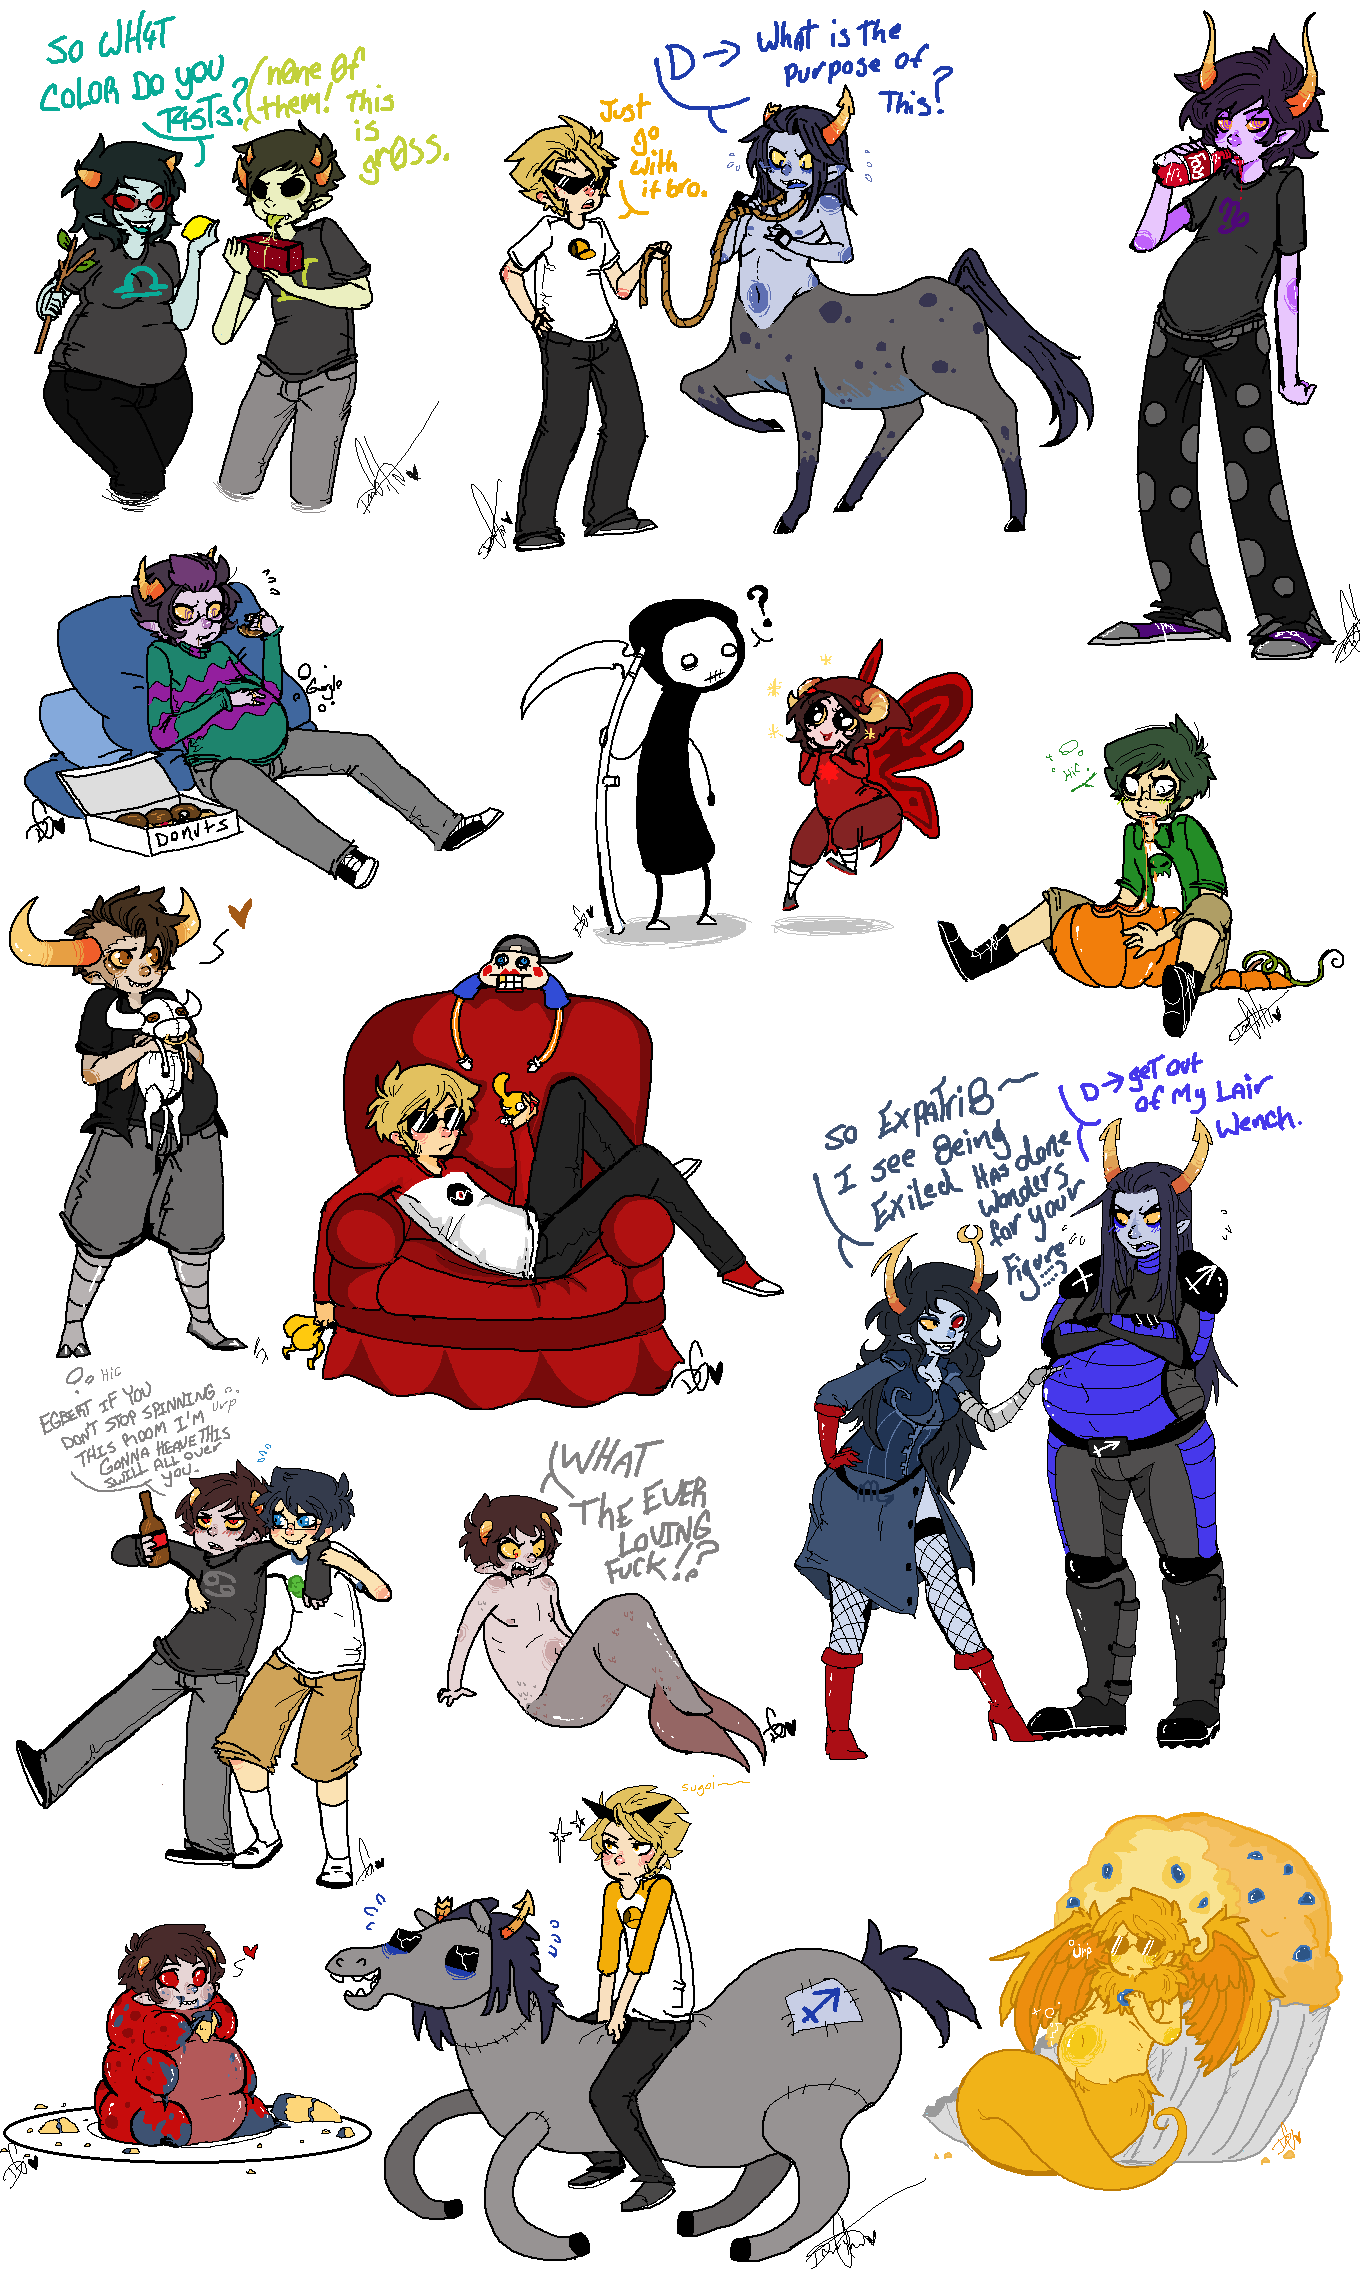 ? alcohol ancestors animalstuck aradia_megido arm_around_shoulder art_dump artificial_limb au blind_love blind_sollux blush centaurs chubstuck communism couch dave_strider davesprite death dirk_strider equius_zahhak expatriate_darkleer faygo food gamzee_makara godtier grubs heart jake_english john_egbert karkat_vantas lil_cal lusus maid marquise_spinneret_mindfang merfolk no_glasses problem_sleuth_(adventure) pumpkin scythe shipping smuppets sollux_captor sprite squidbiscuit tavros_nitram terezi_pyrope the_sufferer time_aspect tinkerbull vomit word_balloon